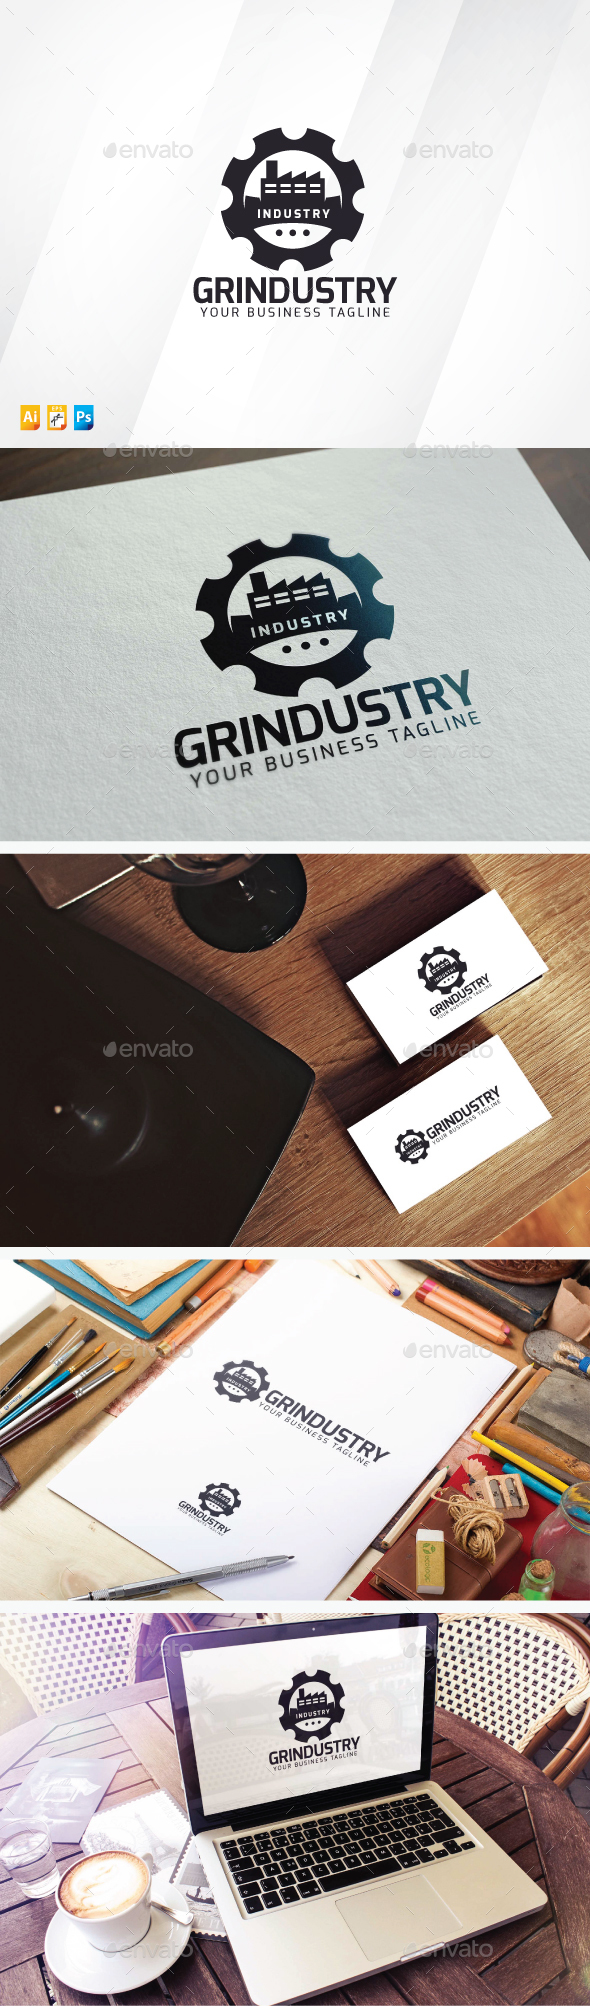 Gear Industry - Buildings Logo Templates